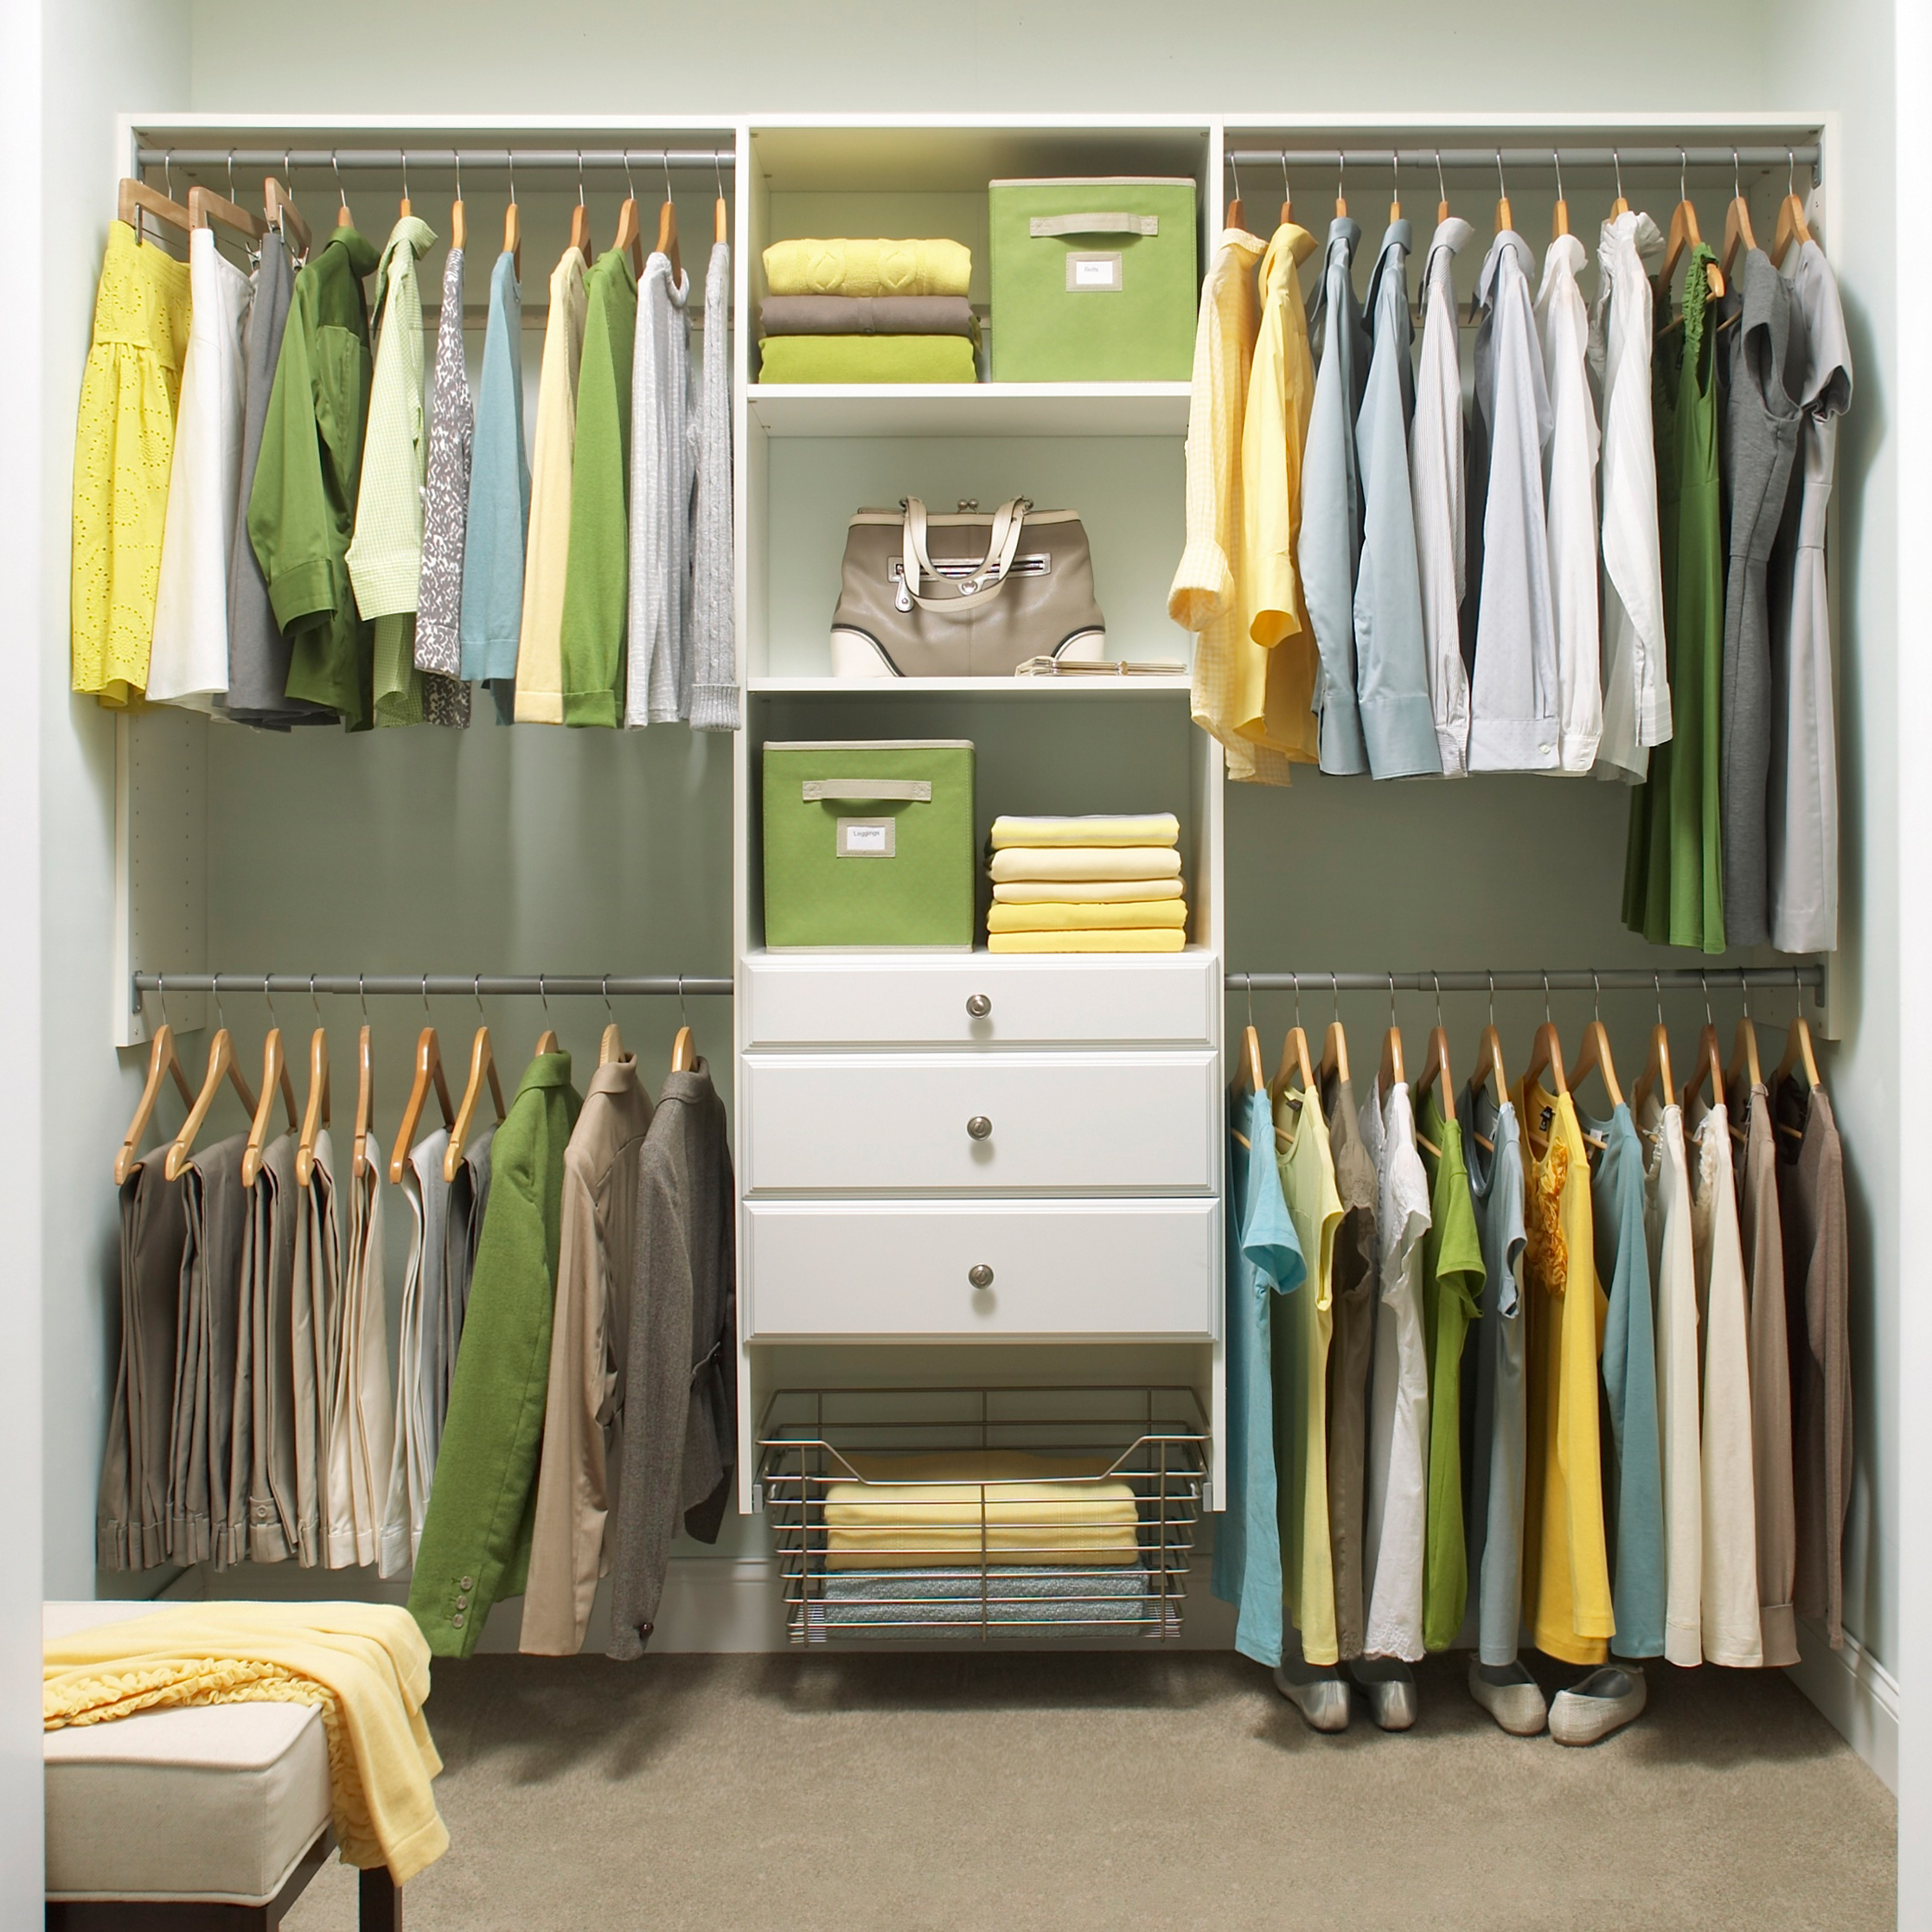 Closet Planner for Best Storage System Ideas: Elfa Planner | Elfa Closet | Closet Planner